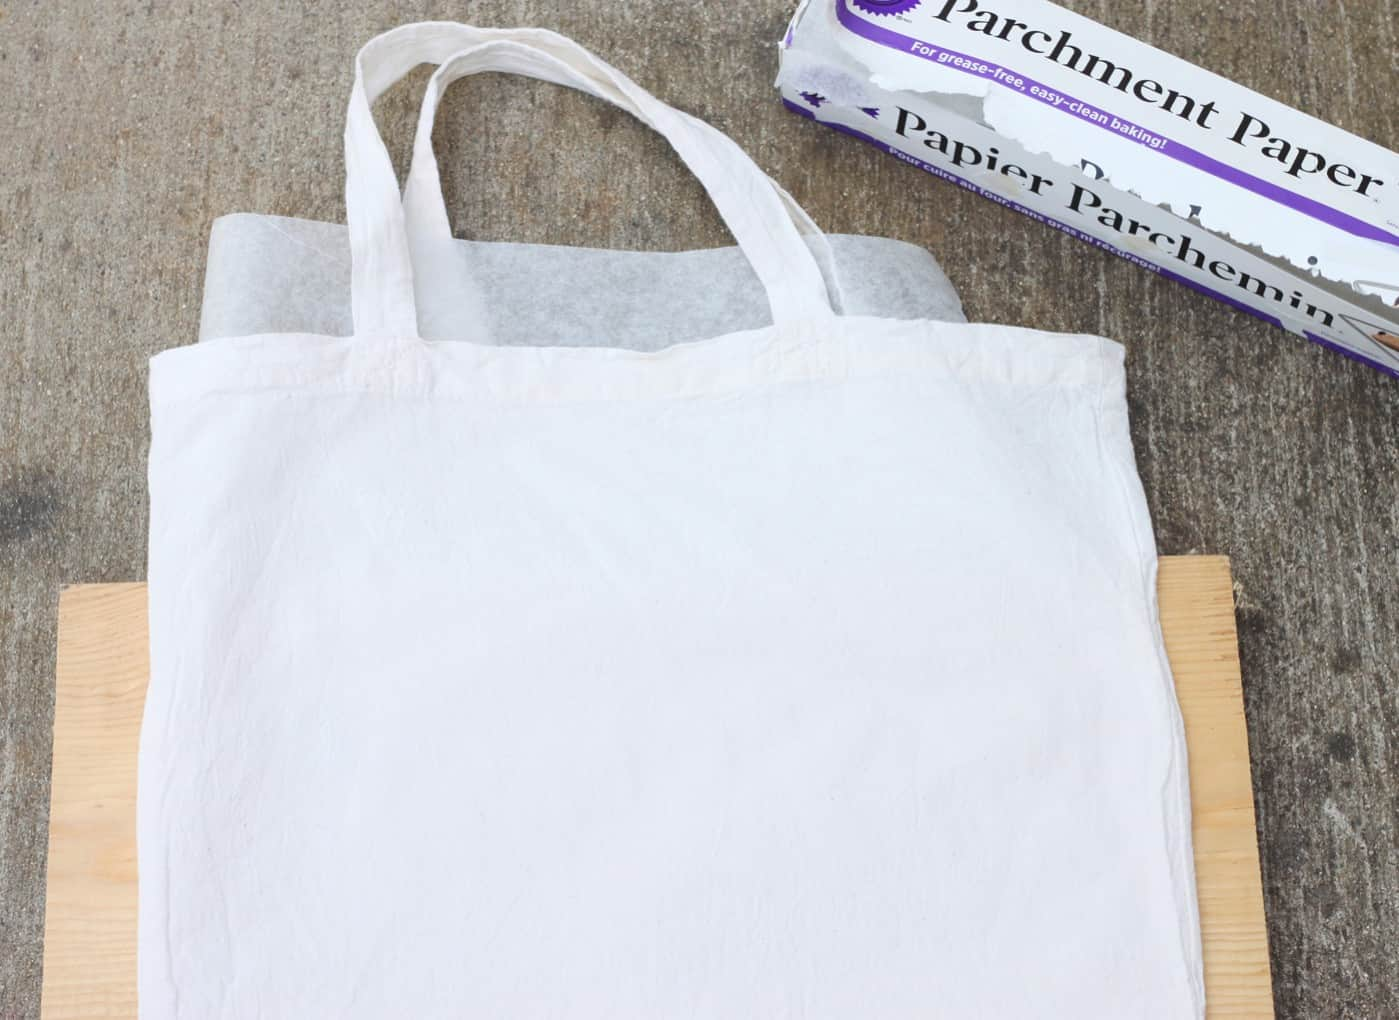 Place a piece of wax paper between two layers of a tote